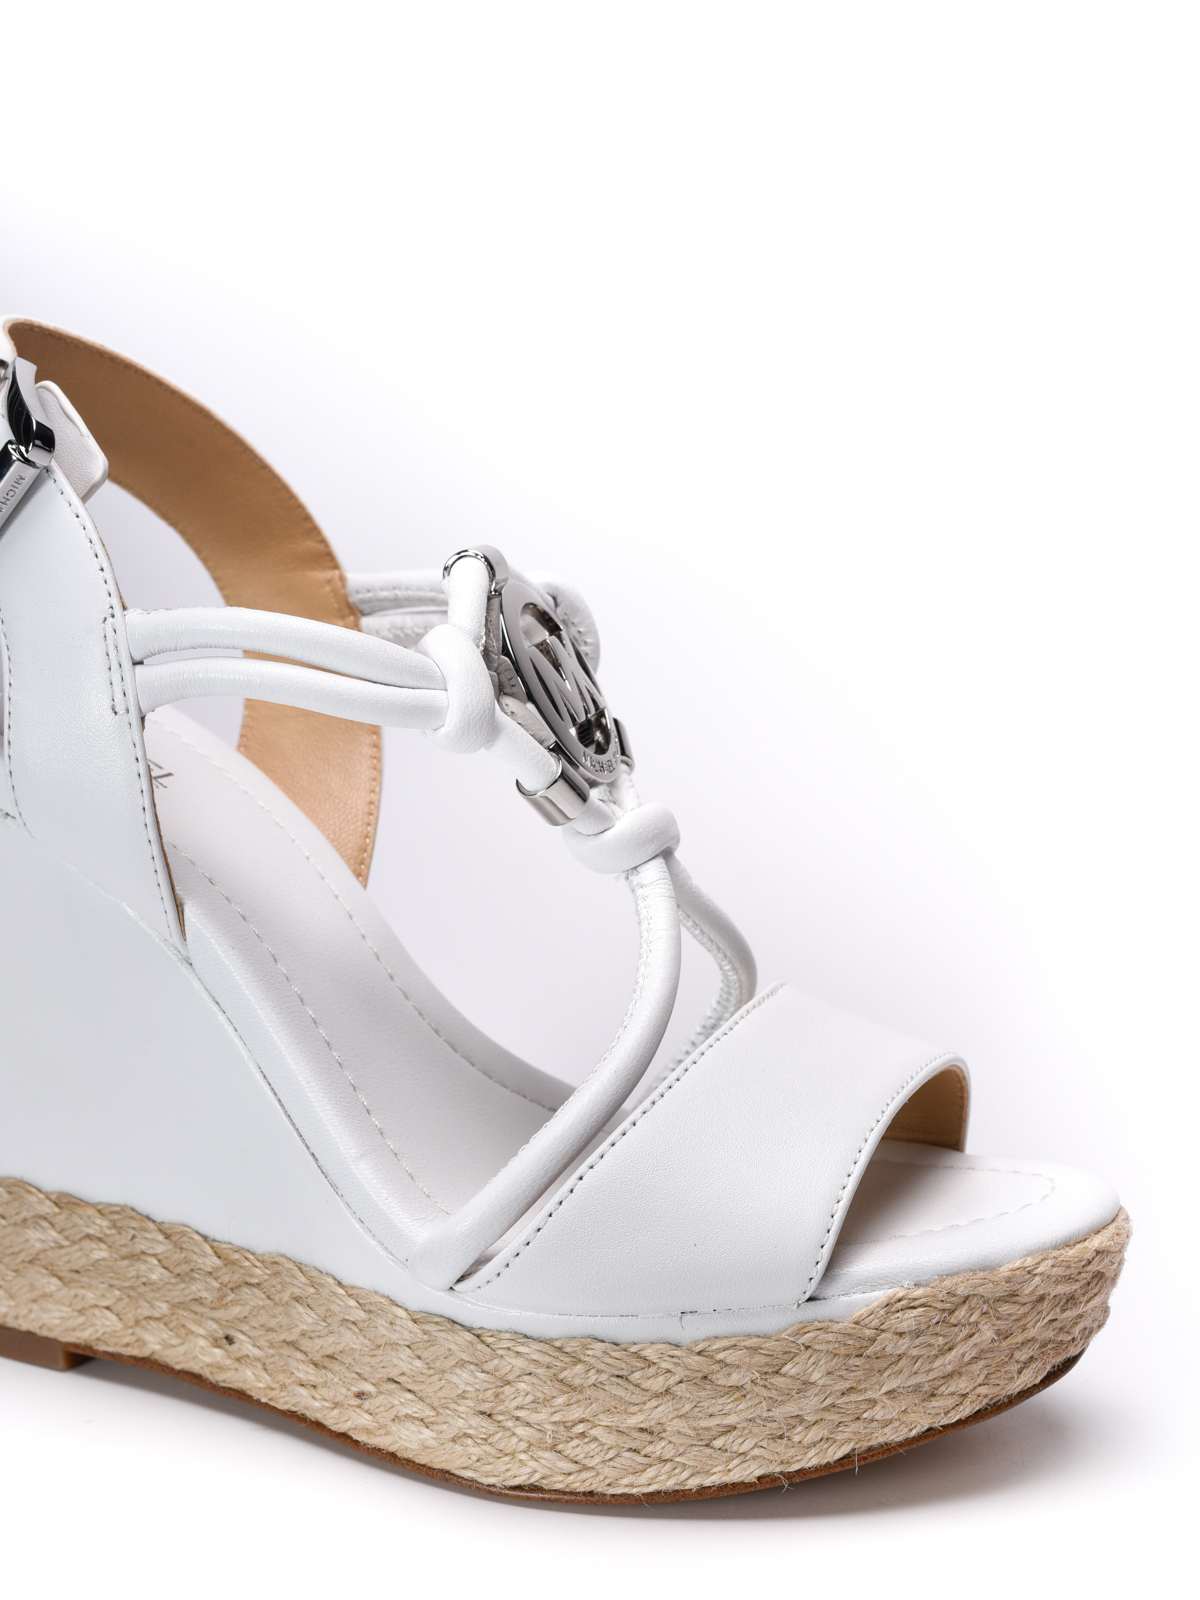 Michael Kors Kinley Wedge Sandals Sandals 40r7kyha1l